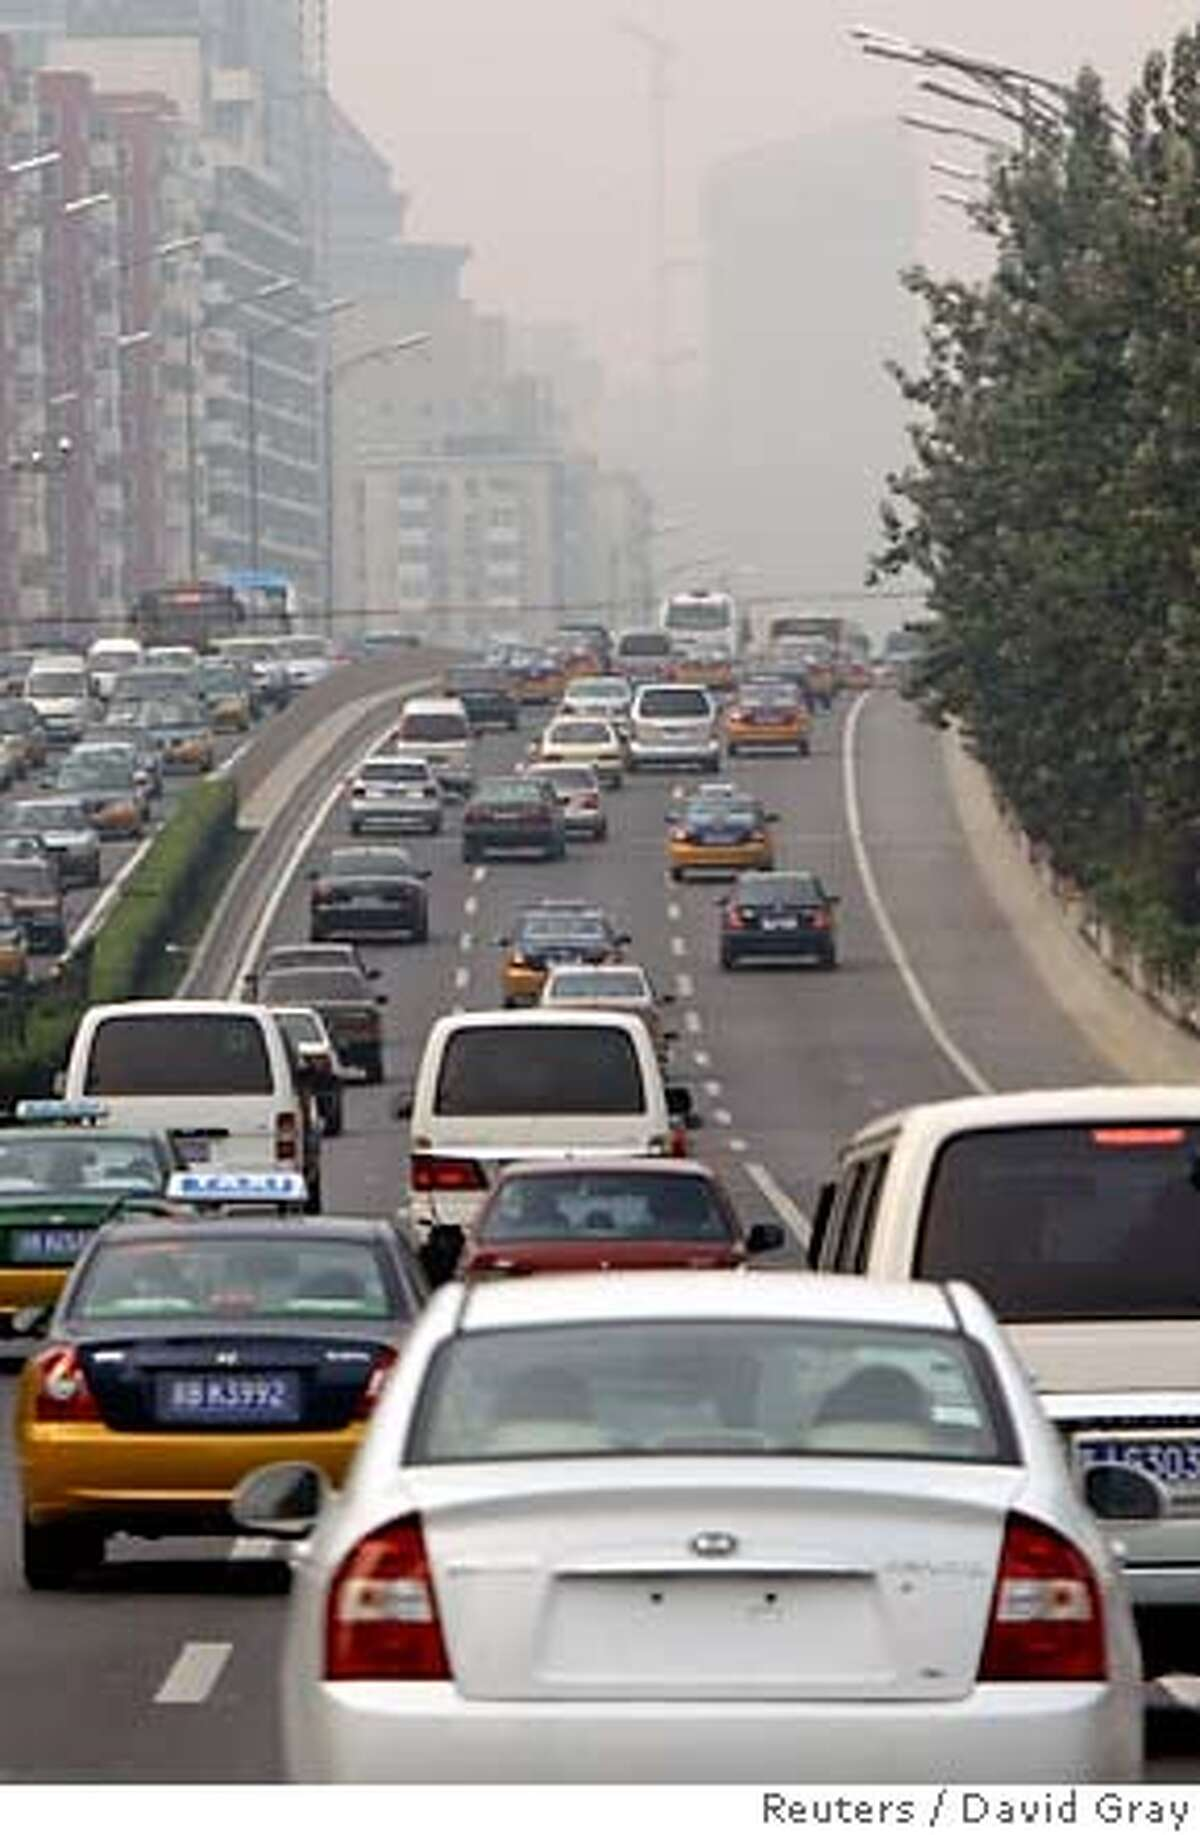 A car with no licence plates drives along a main road in Bejing August 17, 2007. Beijing embarked on a four-day experiment on Friday to see if taking 1.3 million cars off the city's streets will substantially reduce air pollution at next year's Beijing Olympics. The plan involves drivers with an even final digit on their licence plate facing fines if they take to the city roads today and Sunday, while odd numbered cars are banned Saturday and Monday. REUTERS/David Gray (CHINA) 0